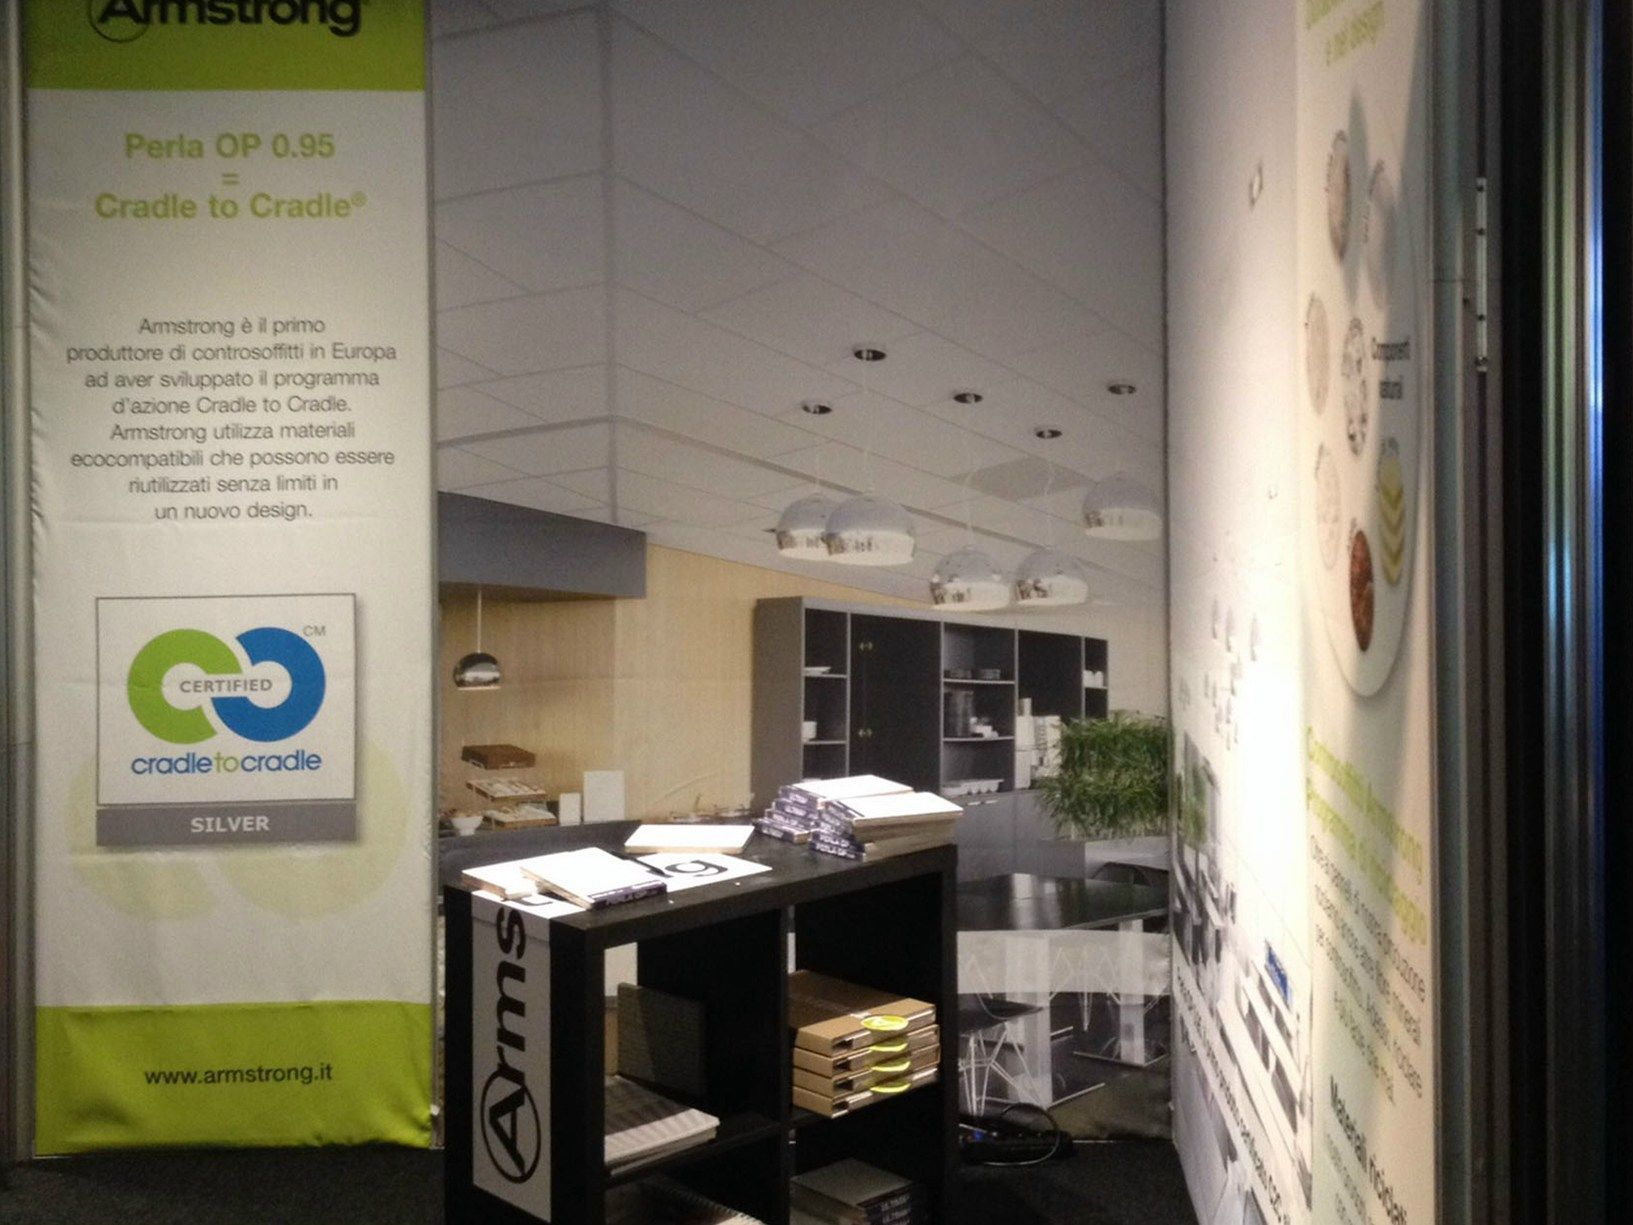 Perla OP 0.95 di Armstrong Building Products: grande successo ad ARCHITECT@WORK